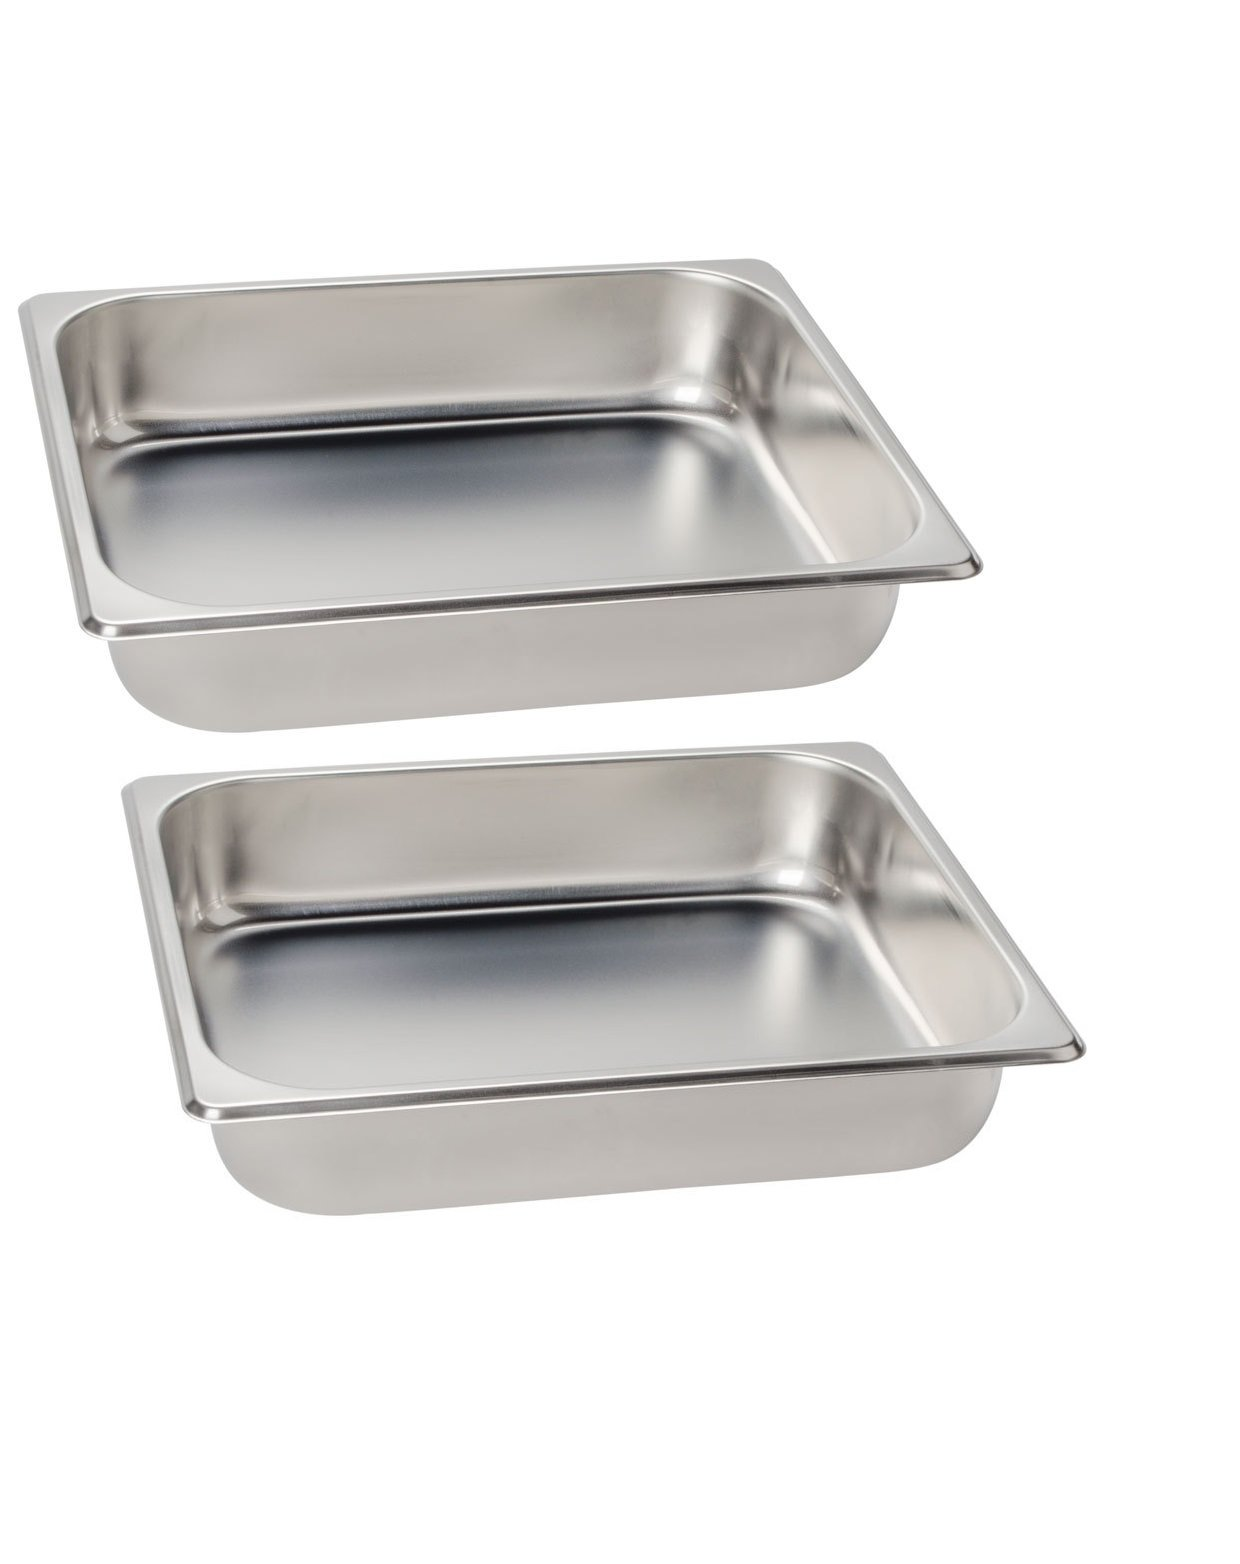 Premier Choice 2 Pack 1/2 Size Chafer Food Pan Stainless Steel Steam Table / Hotel Pan - 2 1/2'' Deep